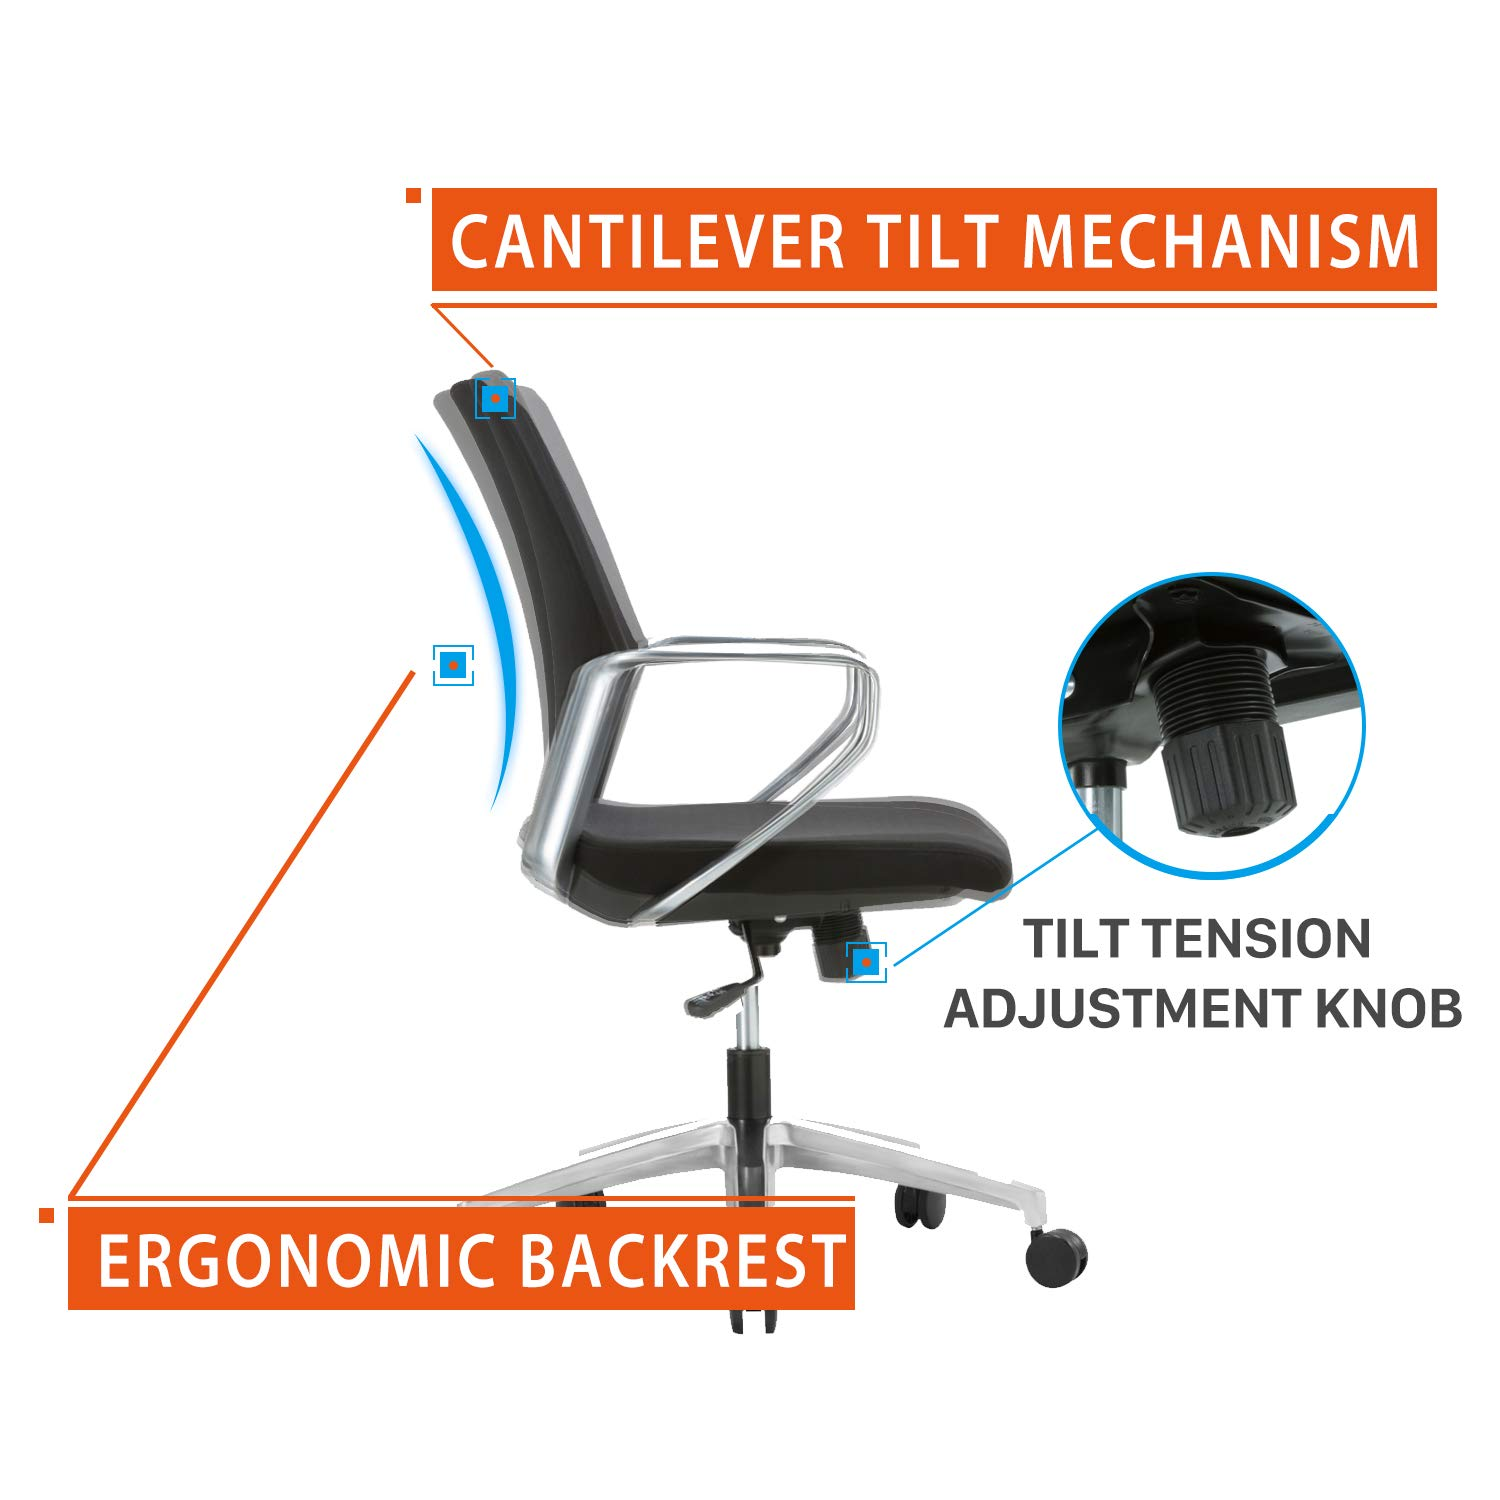 Ergonomic Mid-Back Upholstered Swivel Task Chair with Aluminum Alloy Chrome Arm Rest and Base for Home and Office